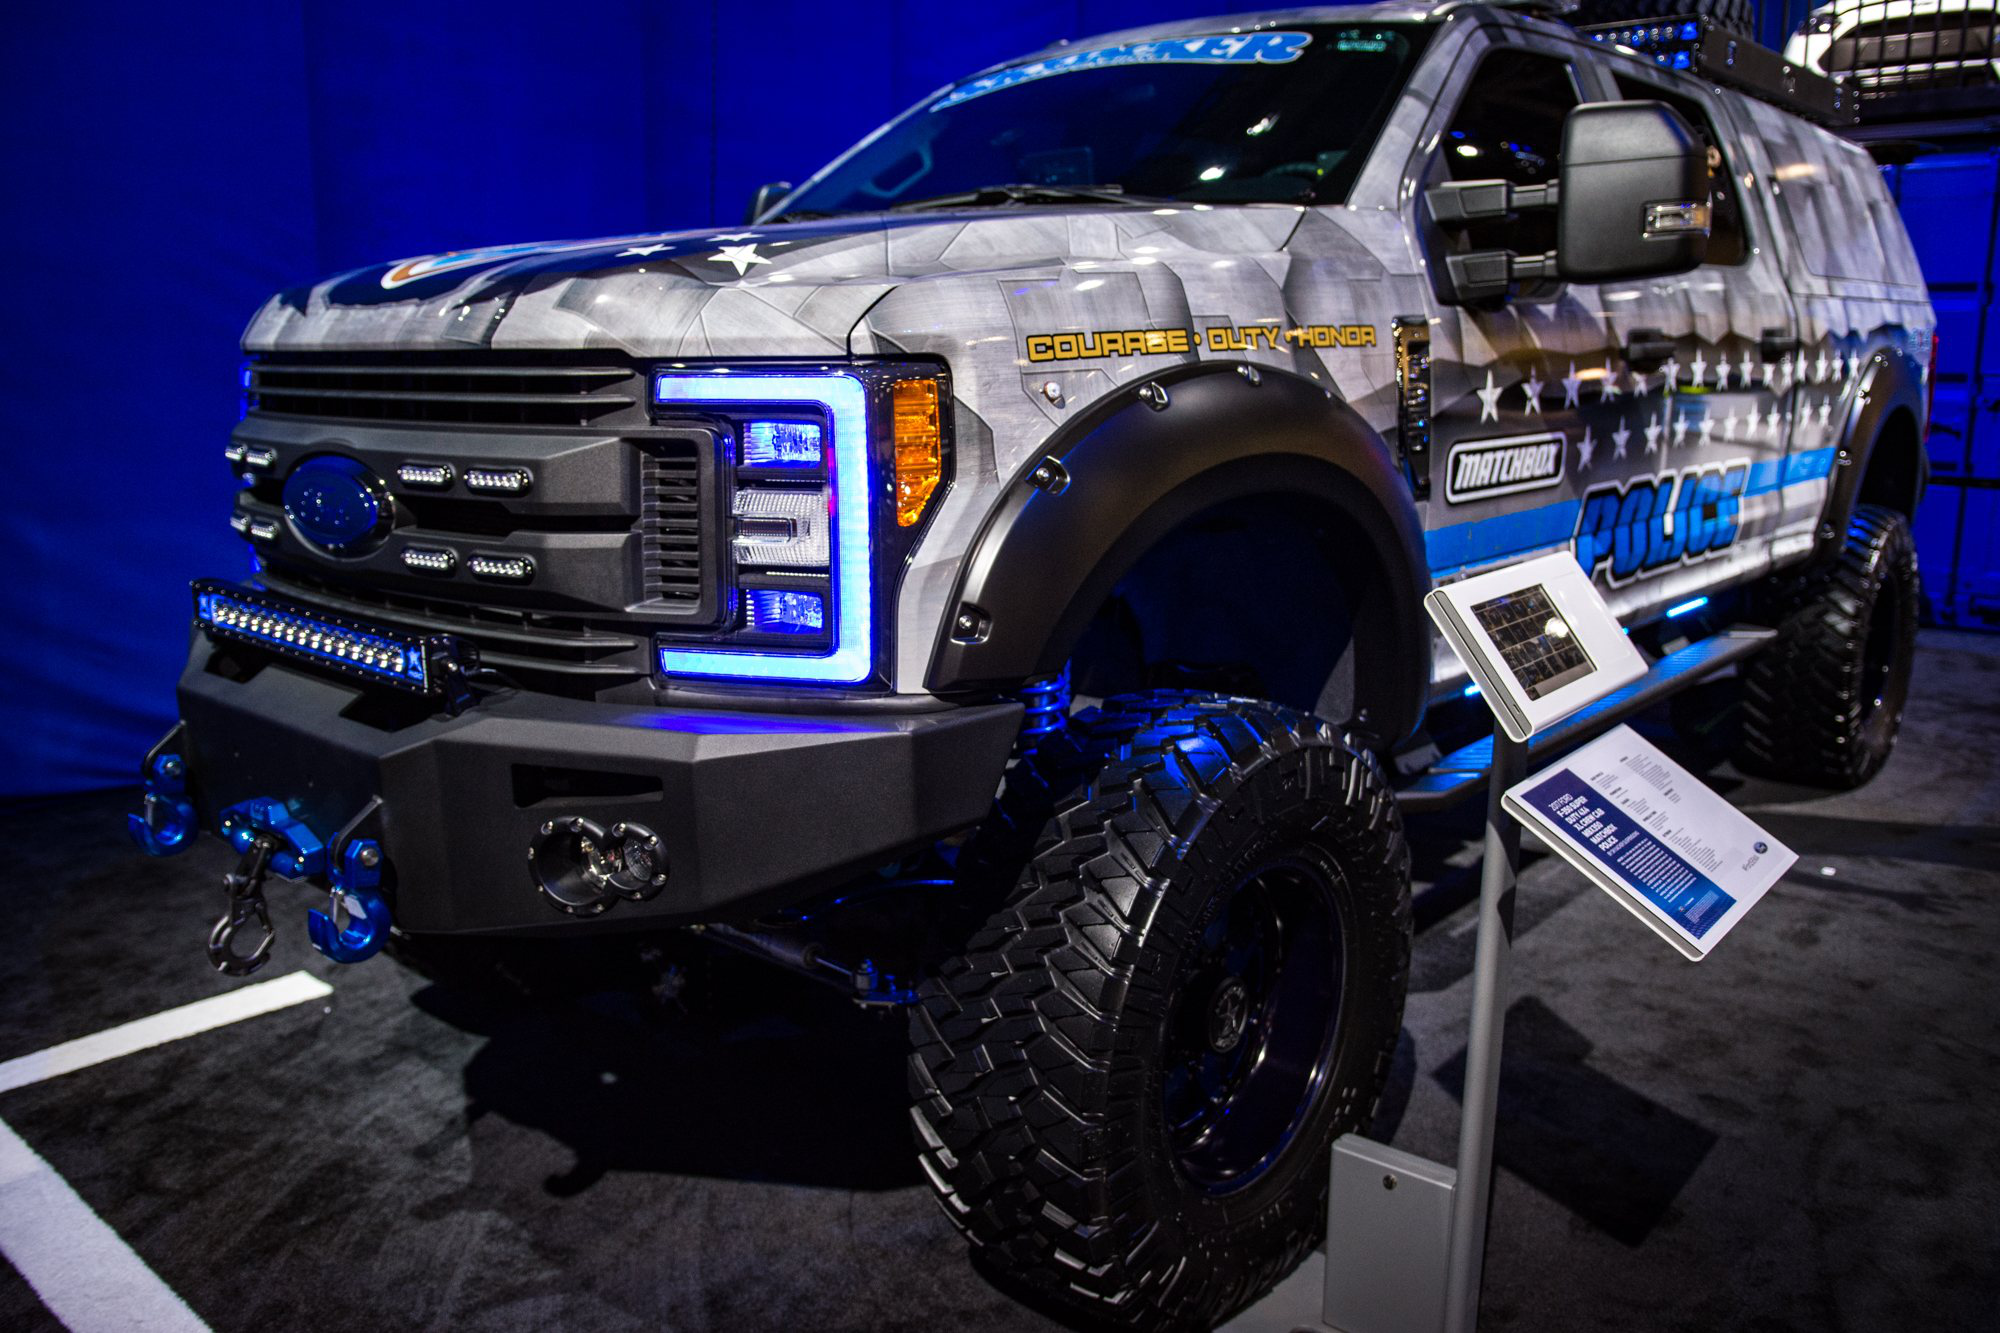 Ford Super Duty >> Ford unveils MBX350, a Super Duty designed for off-road law enforcement